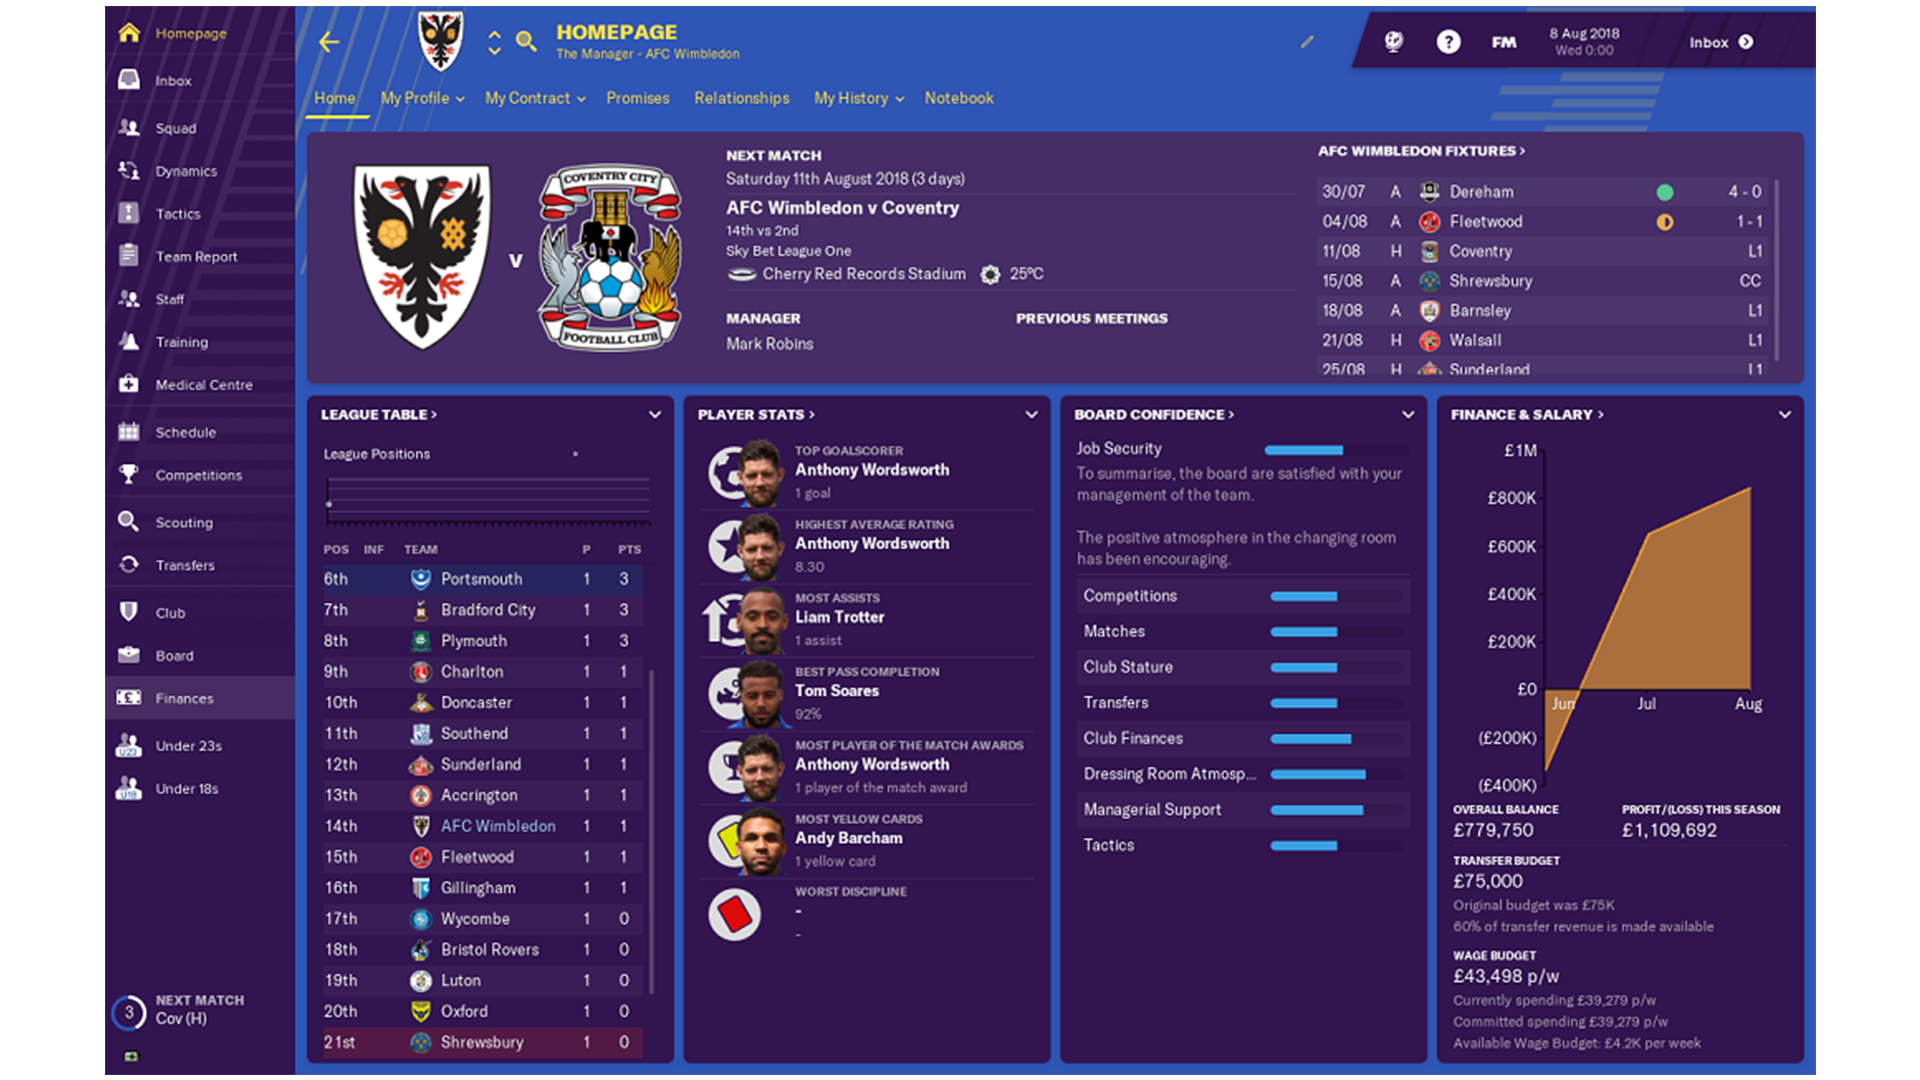 Football Manager 2019 Is The Start Of Three Years Of Huge Changes